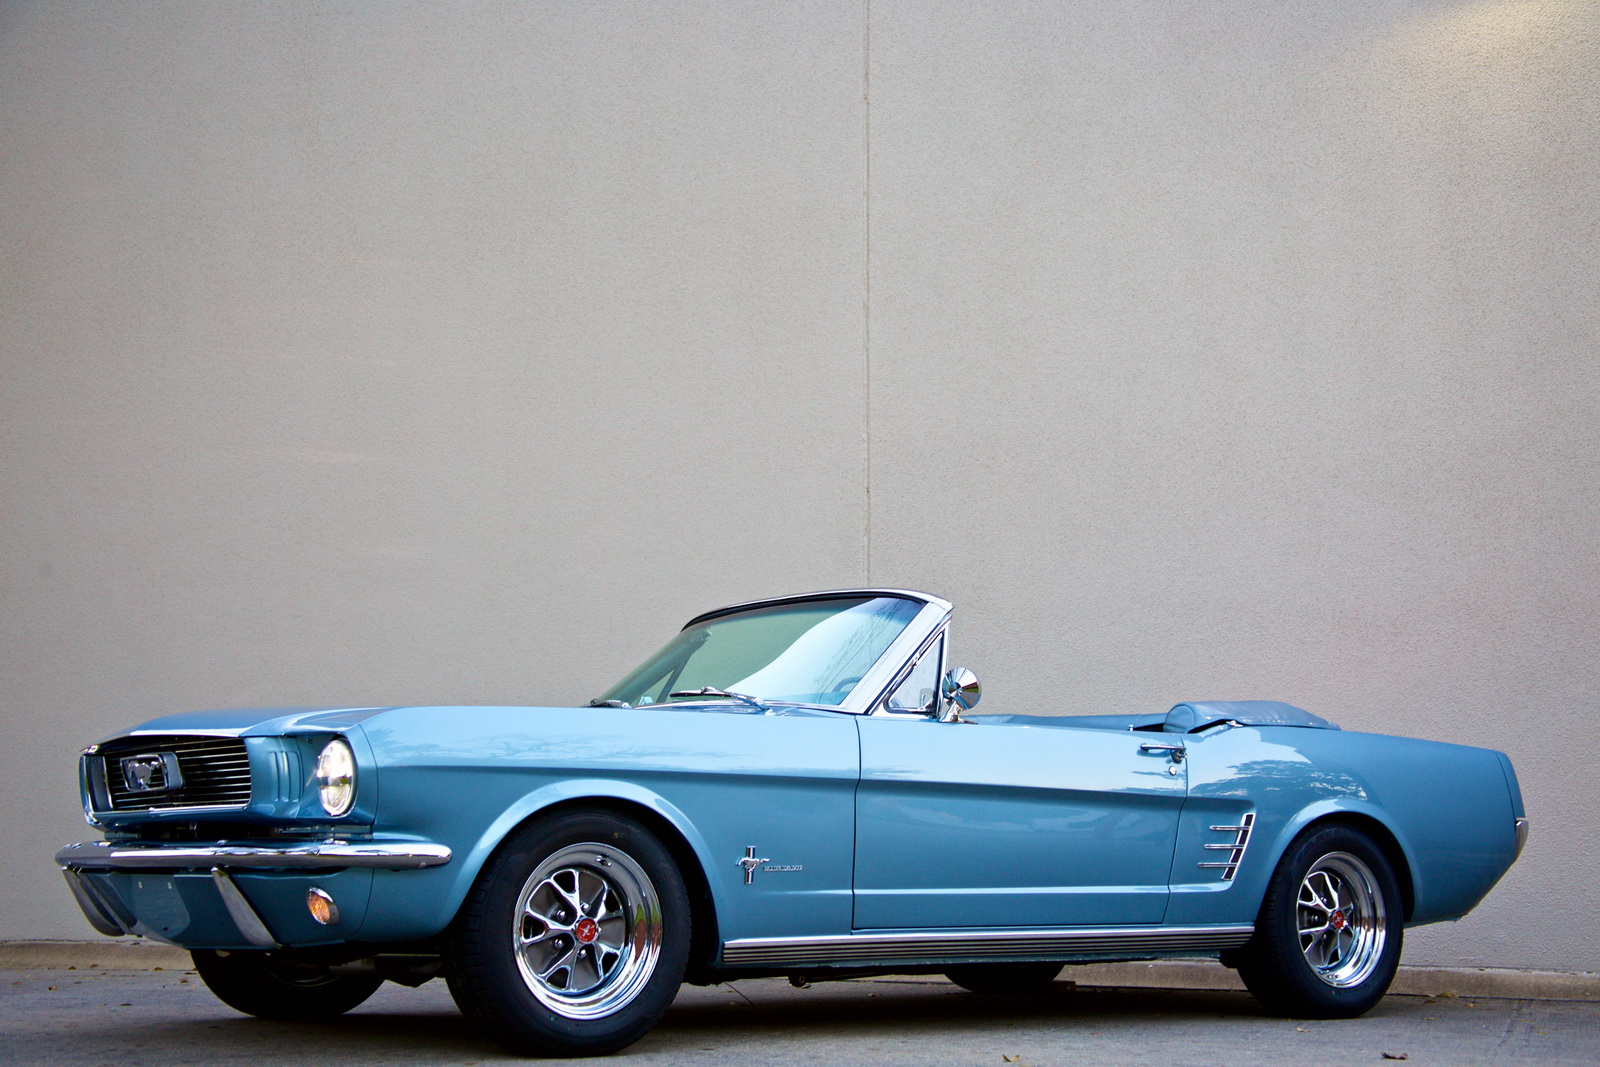 You Can Now Buy A Brand-New Classic Mustang Packed With